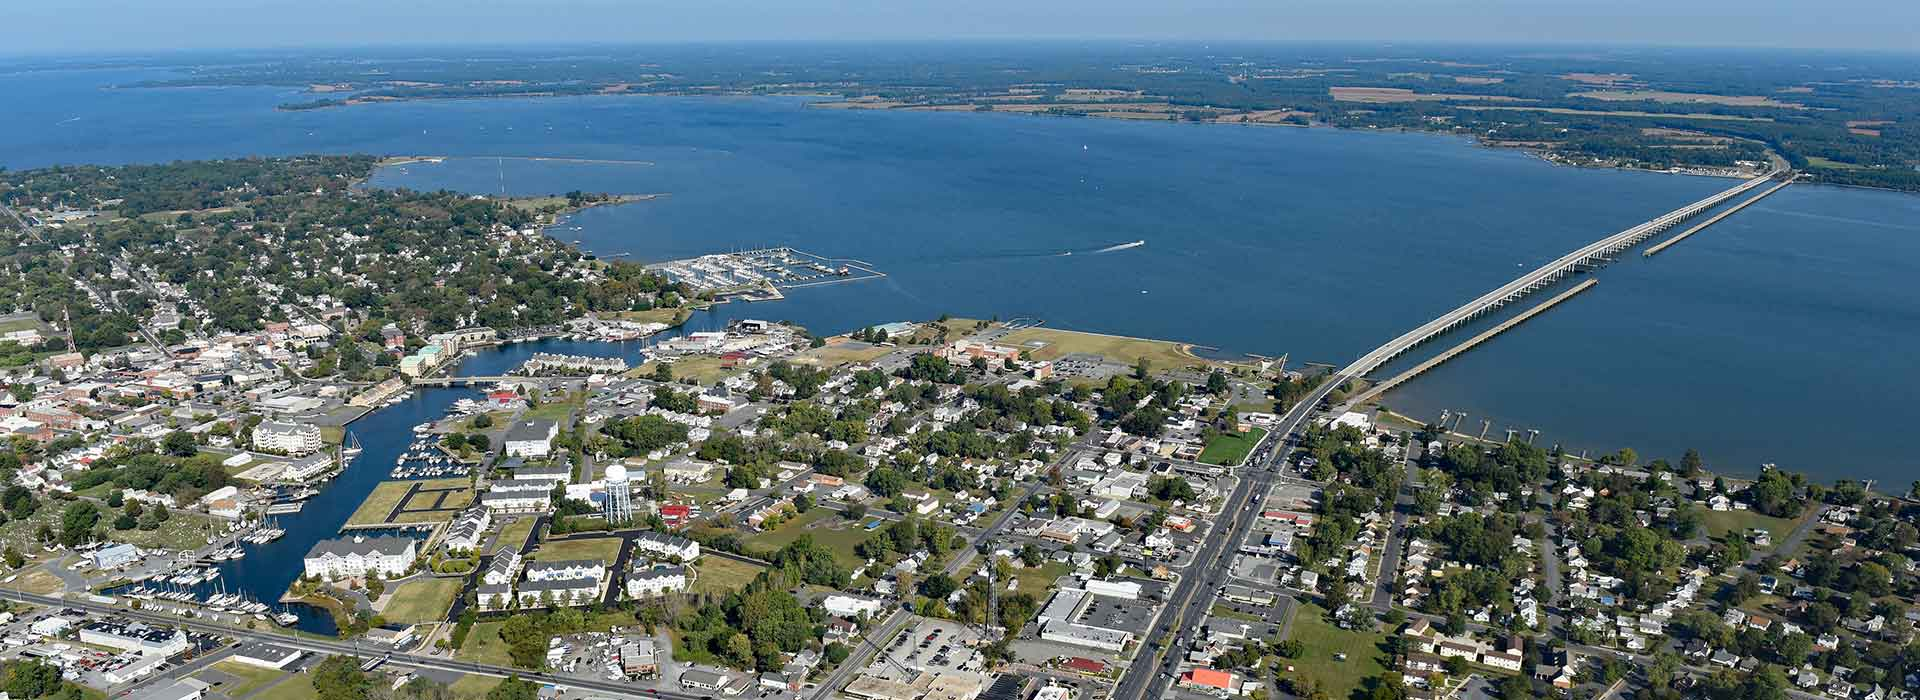 Cambridge MD city aerial